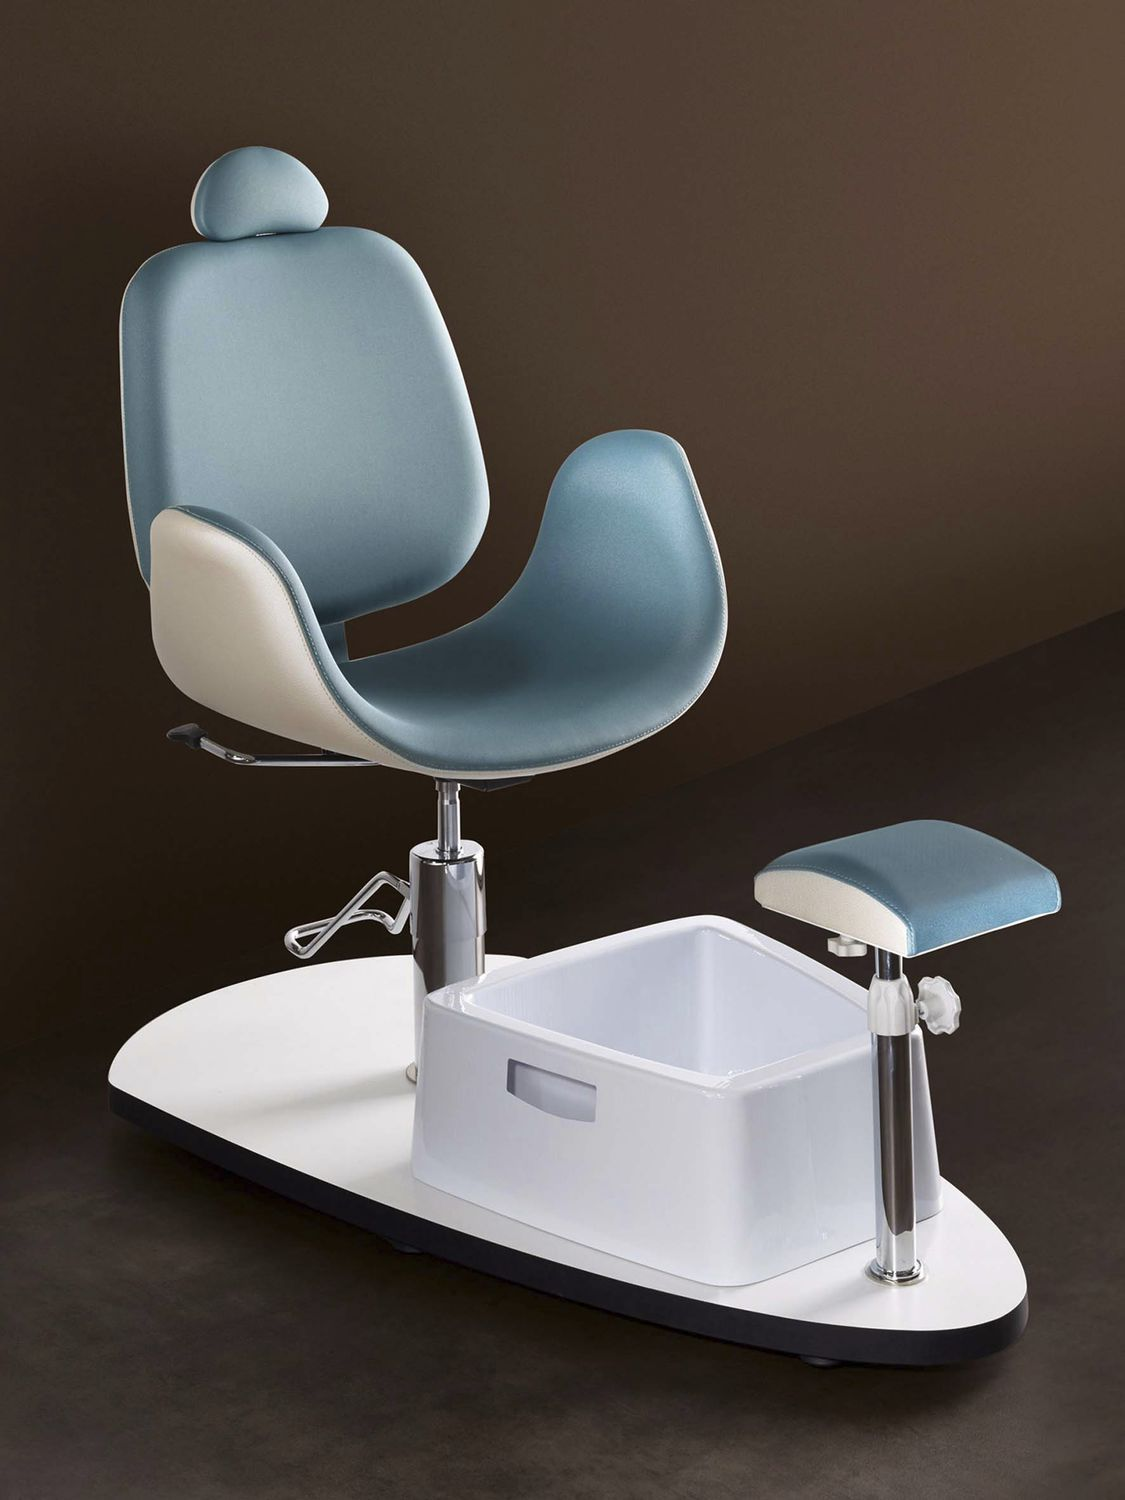 synthetic leather pedicure chair / with hydraulic pump / with footrest / white ... & Synthetic leather pedicure chair / with hydraulic pump / with ...